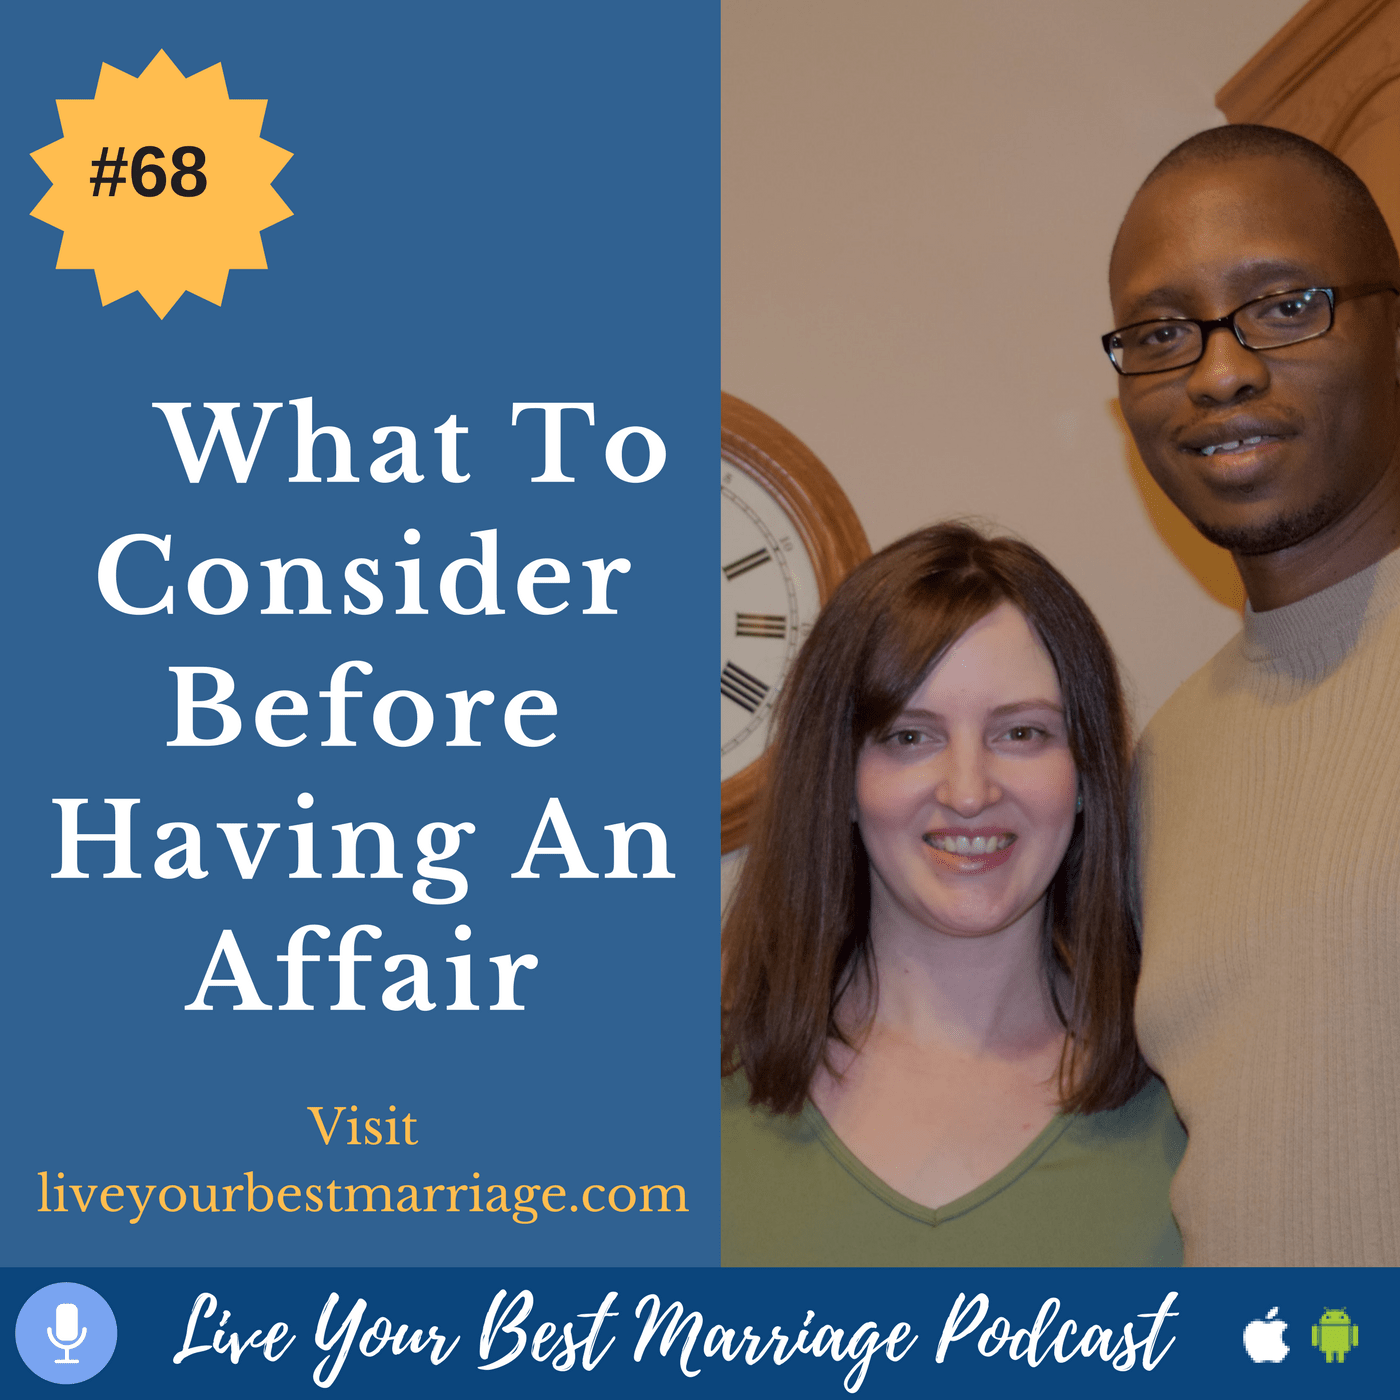 episode-68-what-to-consider-before-having-an-affair-audio_thumbnail.png